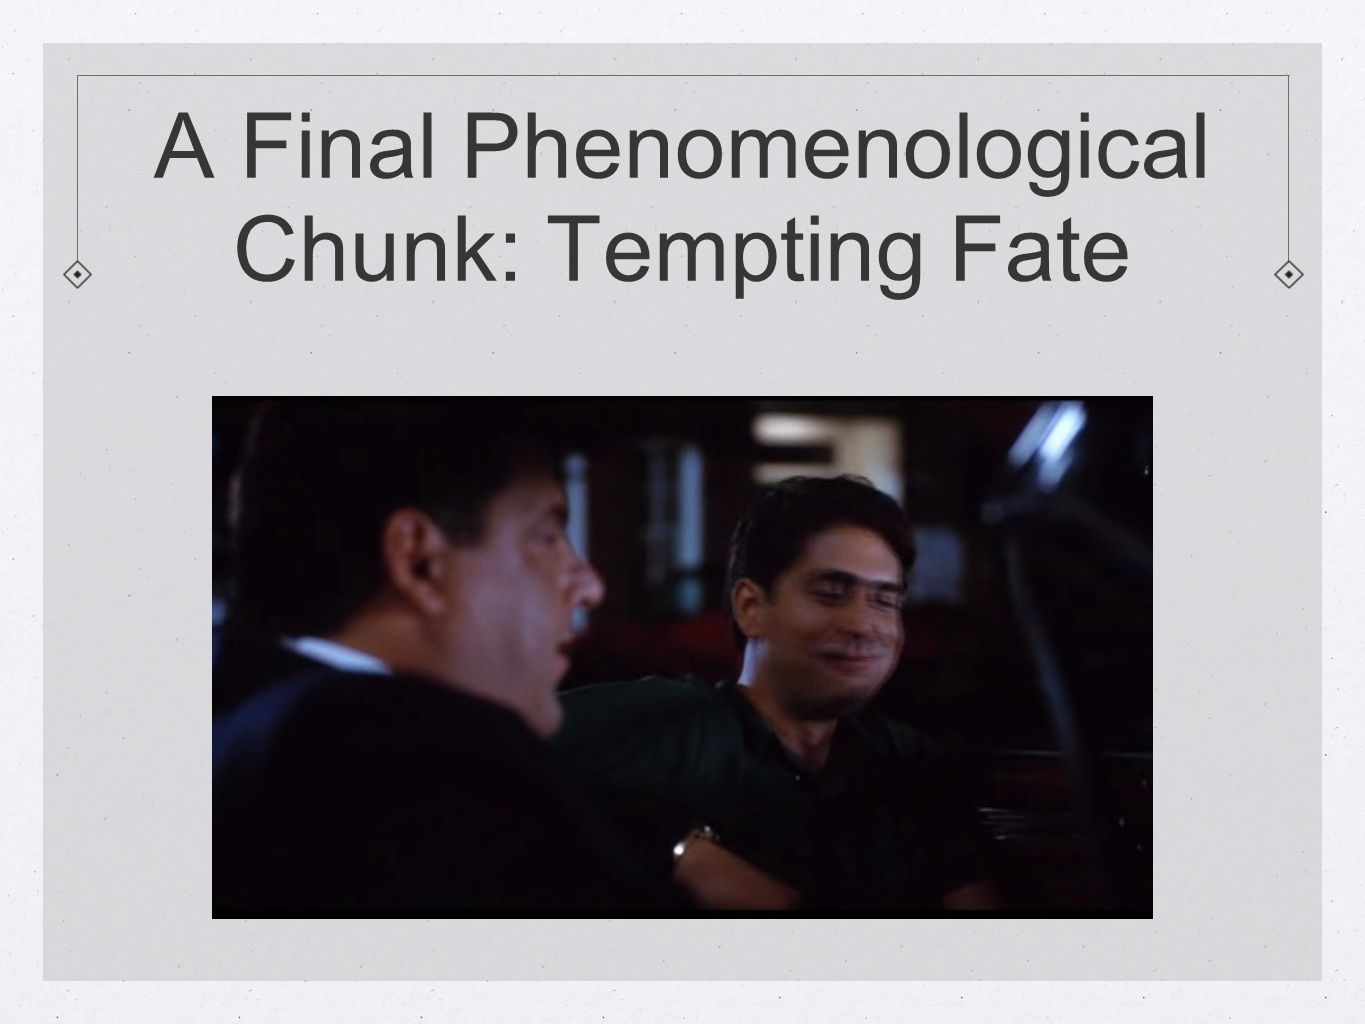 A Final Phenomenological Chunk: Tempting Fate